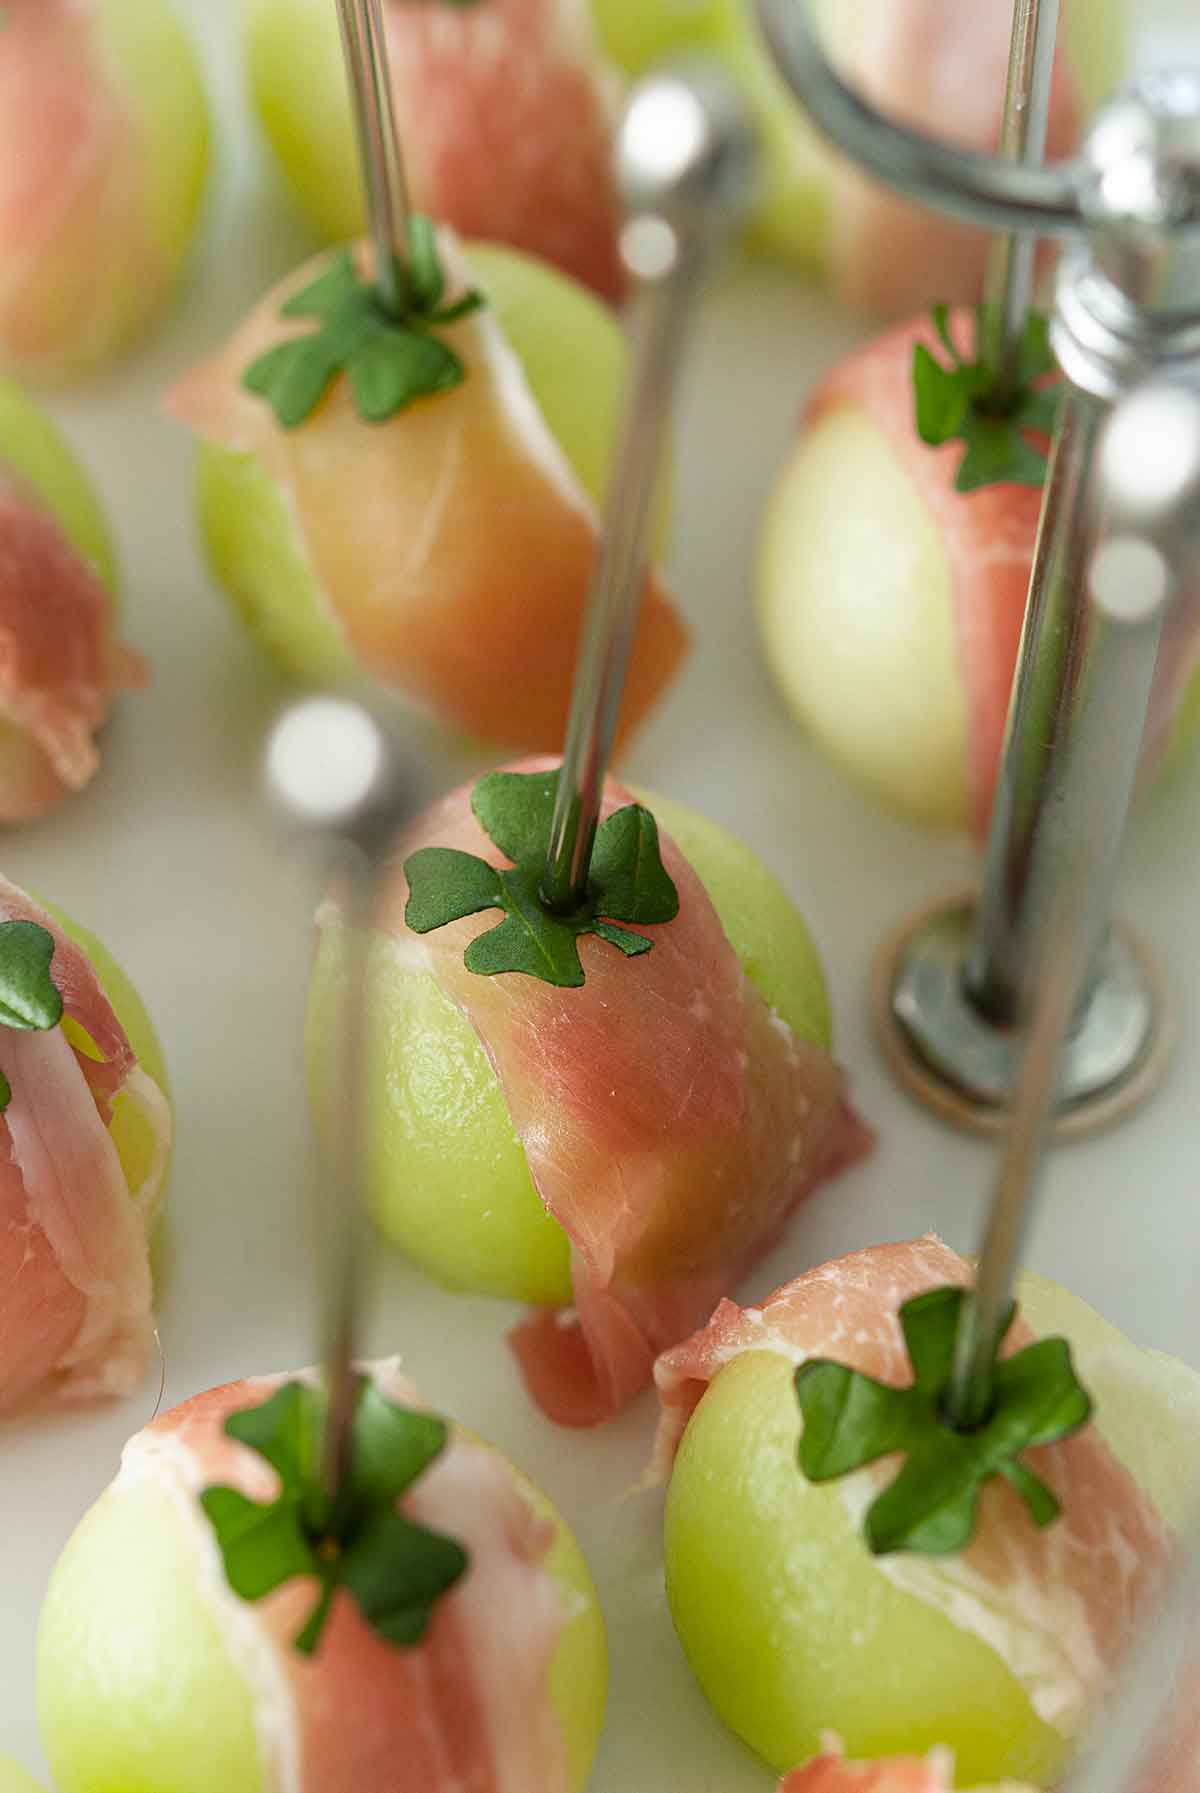 About 10 balled melon appetizers, wrapped in prosciutto with clovers on top, and pierced with cocktail pins.